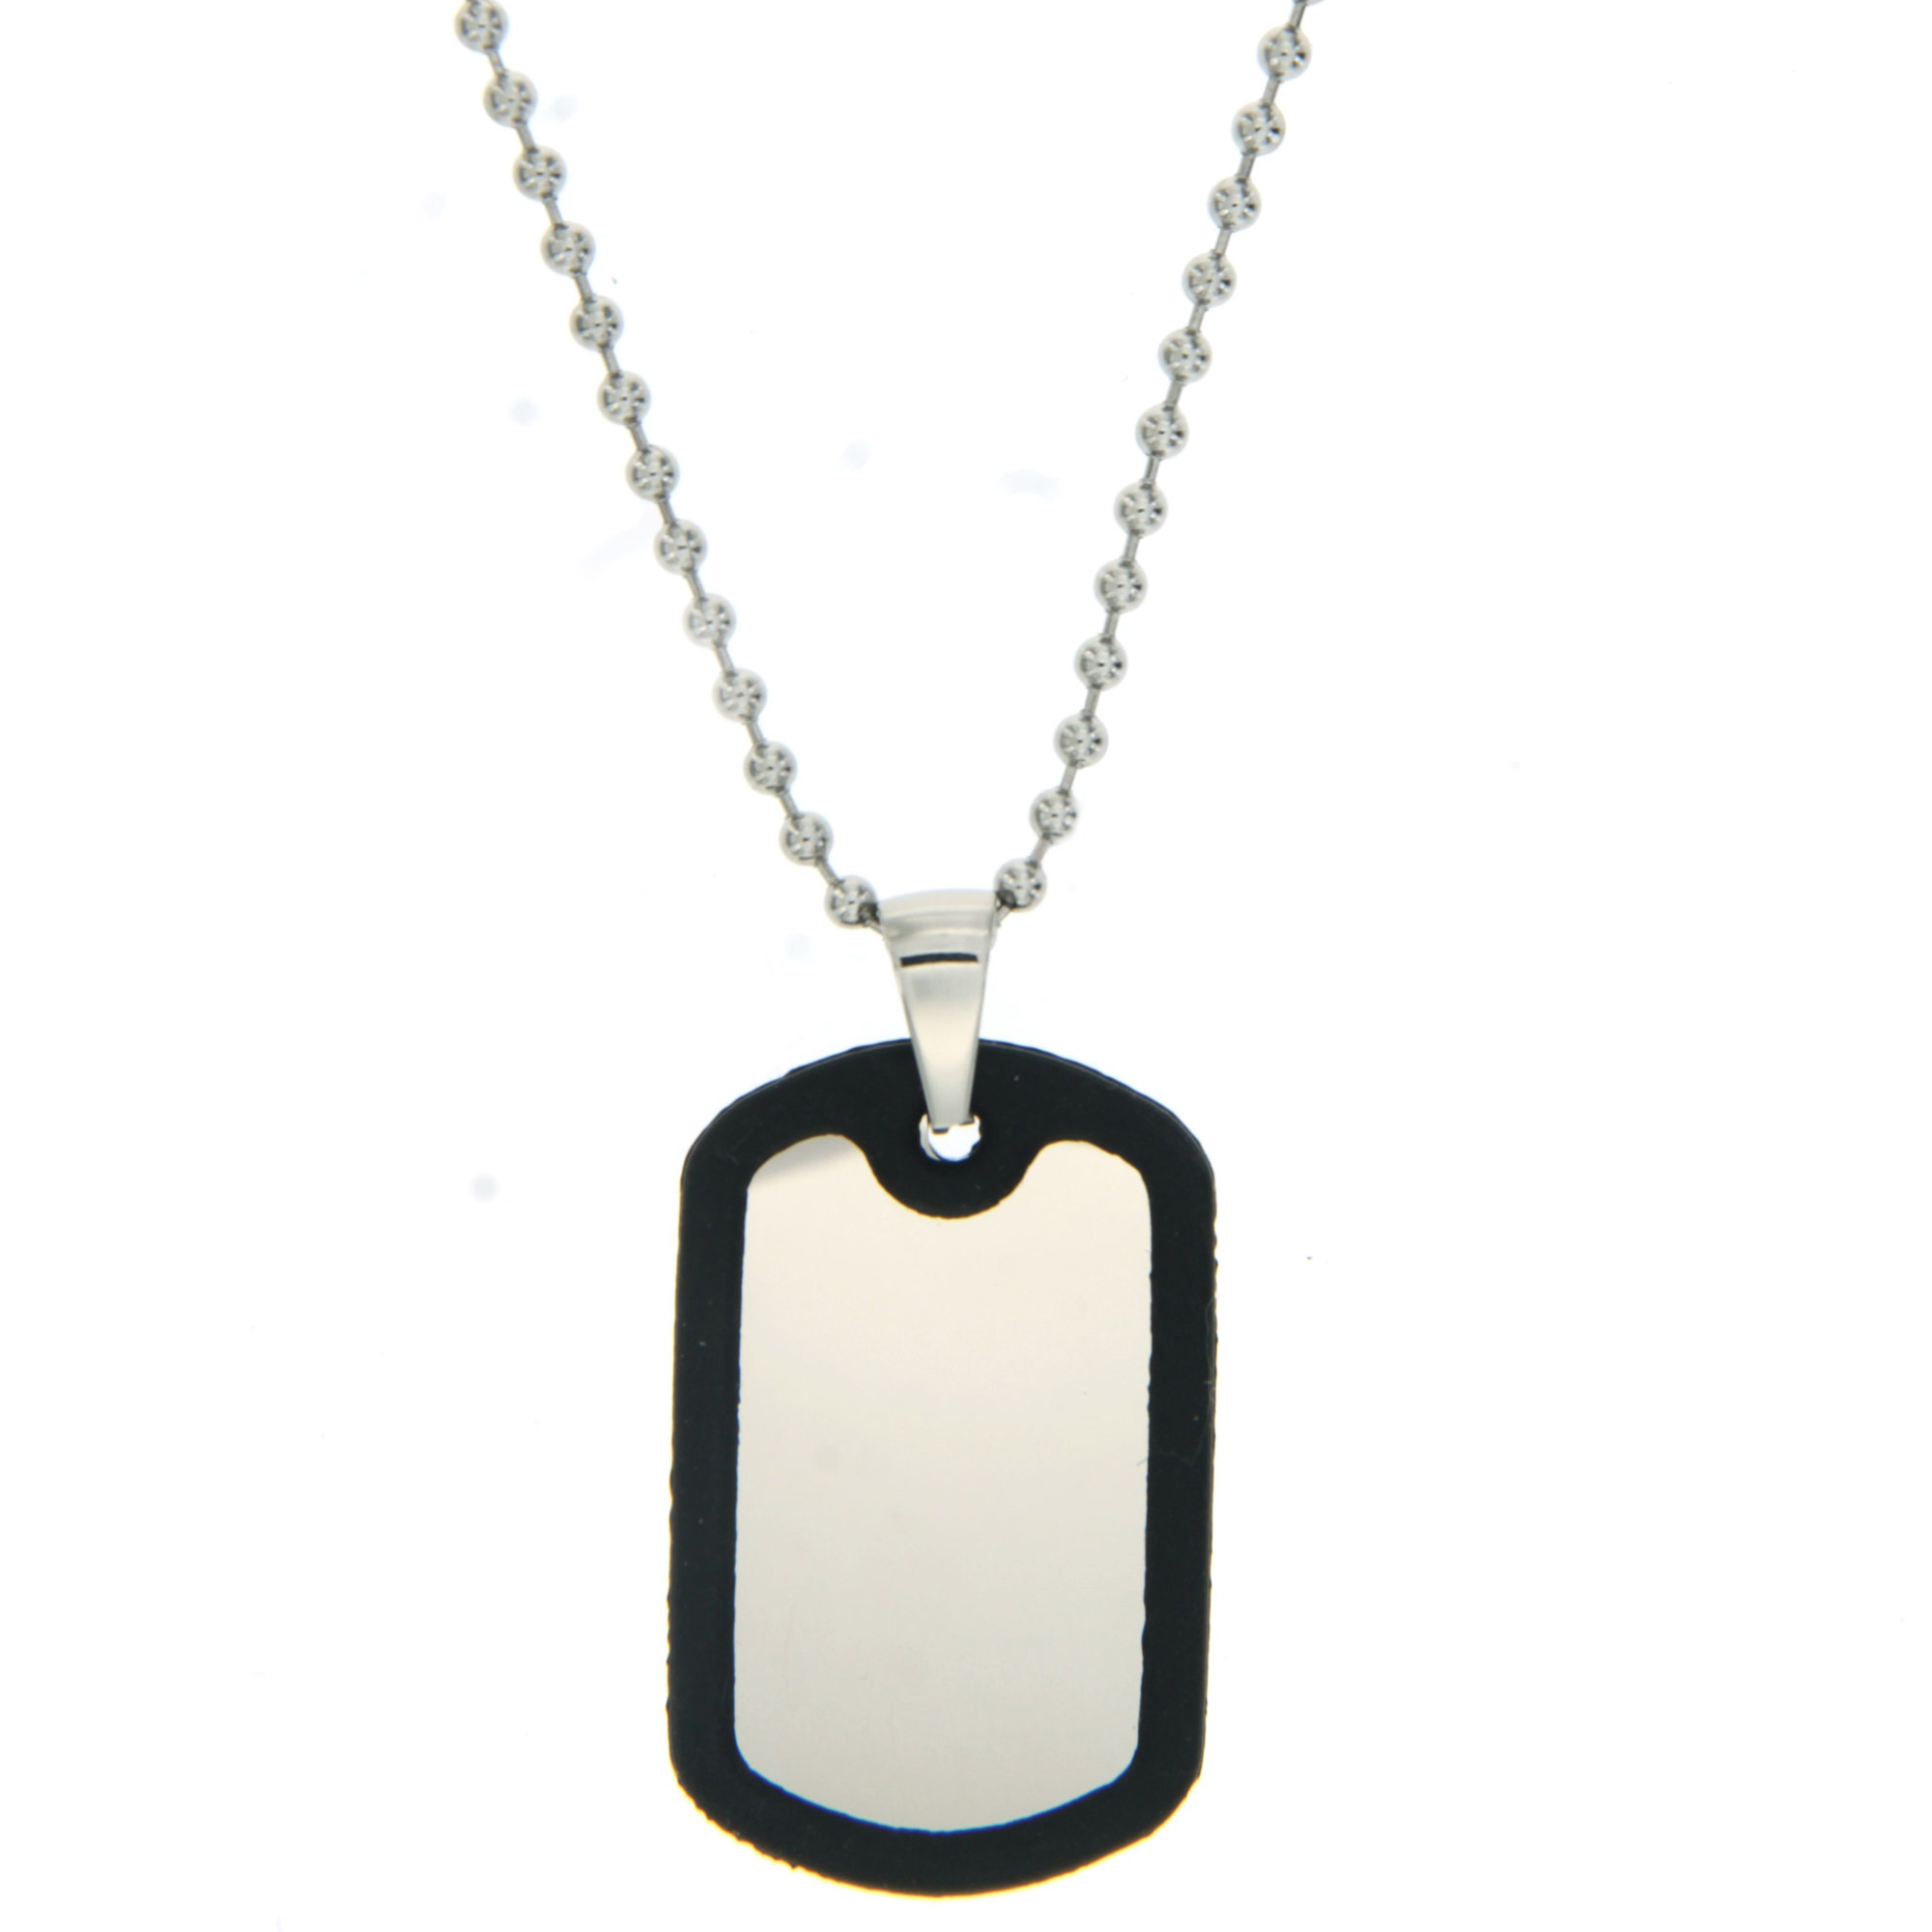 SILVERWORKS X1868 RUBBER DOGTAG WITH BALLSCHAIN